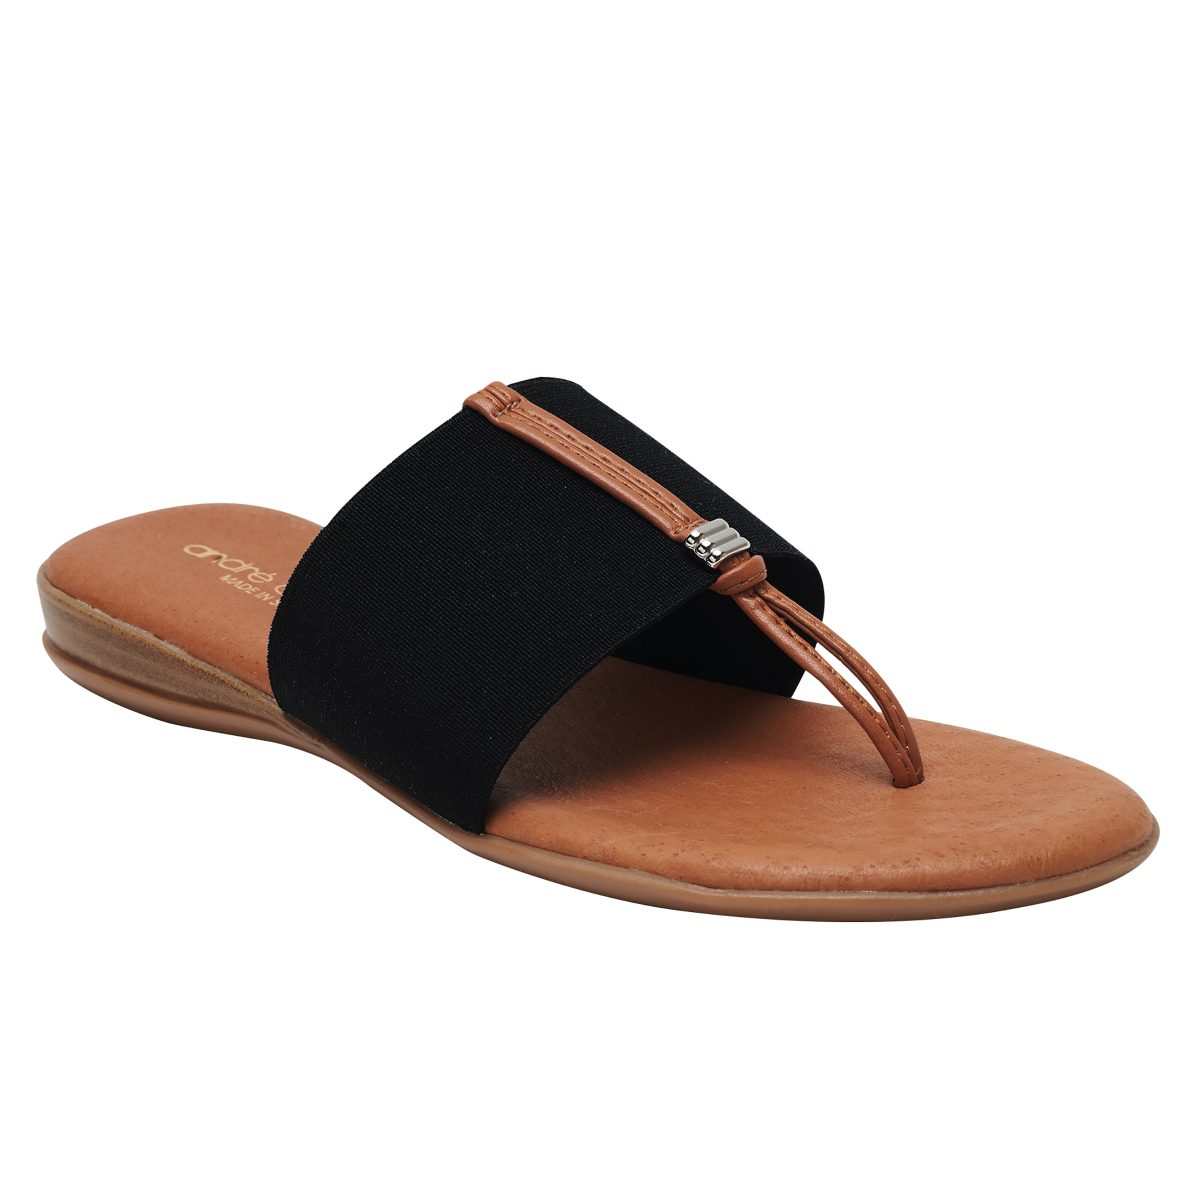 Andre Assous Nice thong style sandal with leather padded footbed and wide elastic band  Ooh! Ooh! Shoes woman's clothing and shoe boutique naples, charleston and mashpee